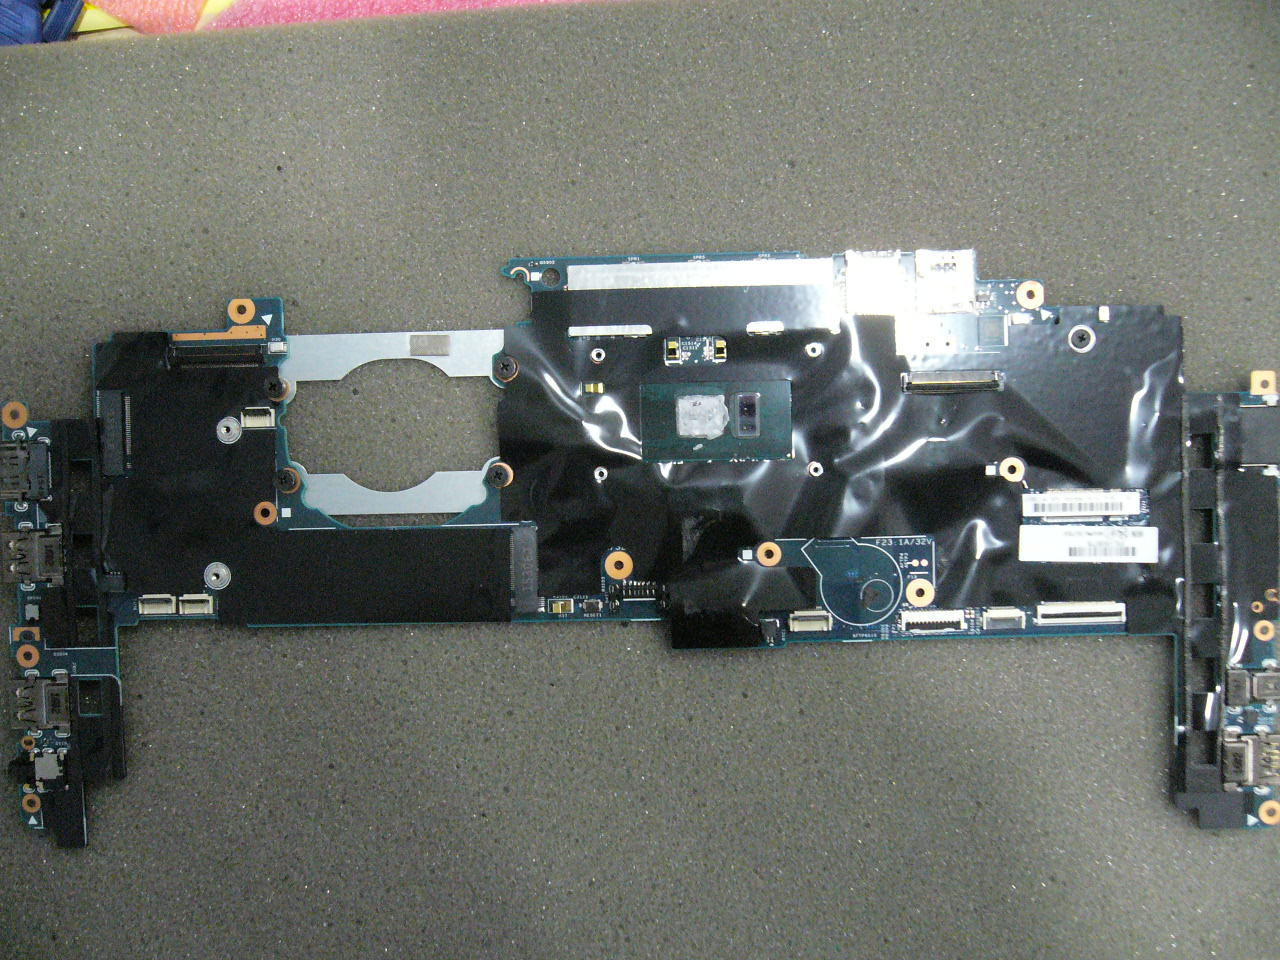 QTY 1x Lenovo Thinkpad X1 Carbon Gen 4 motherboard i7-6500U 8GB X1C 00JT804